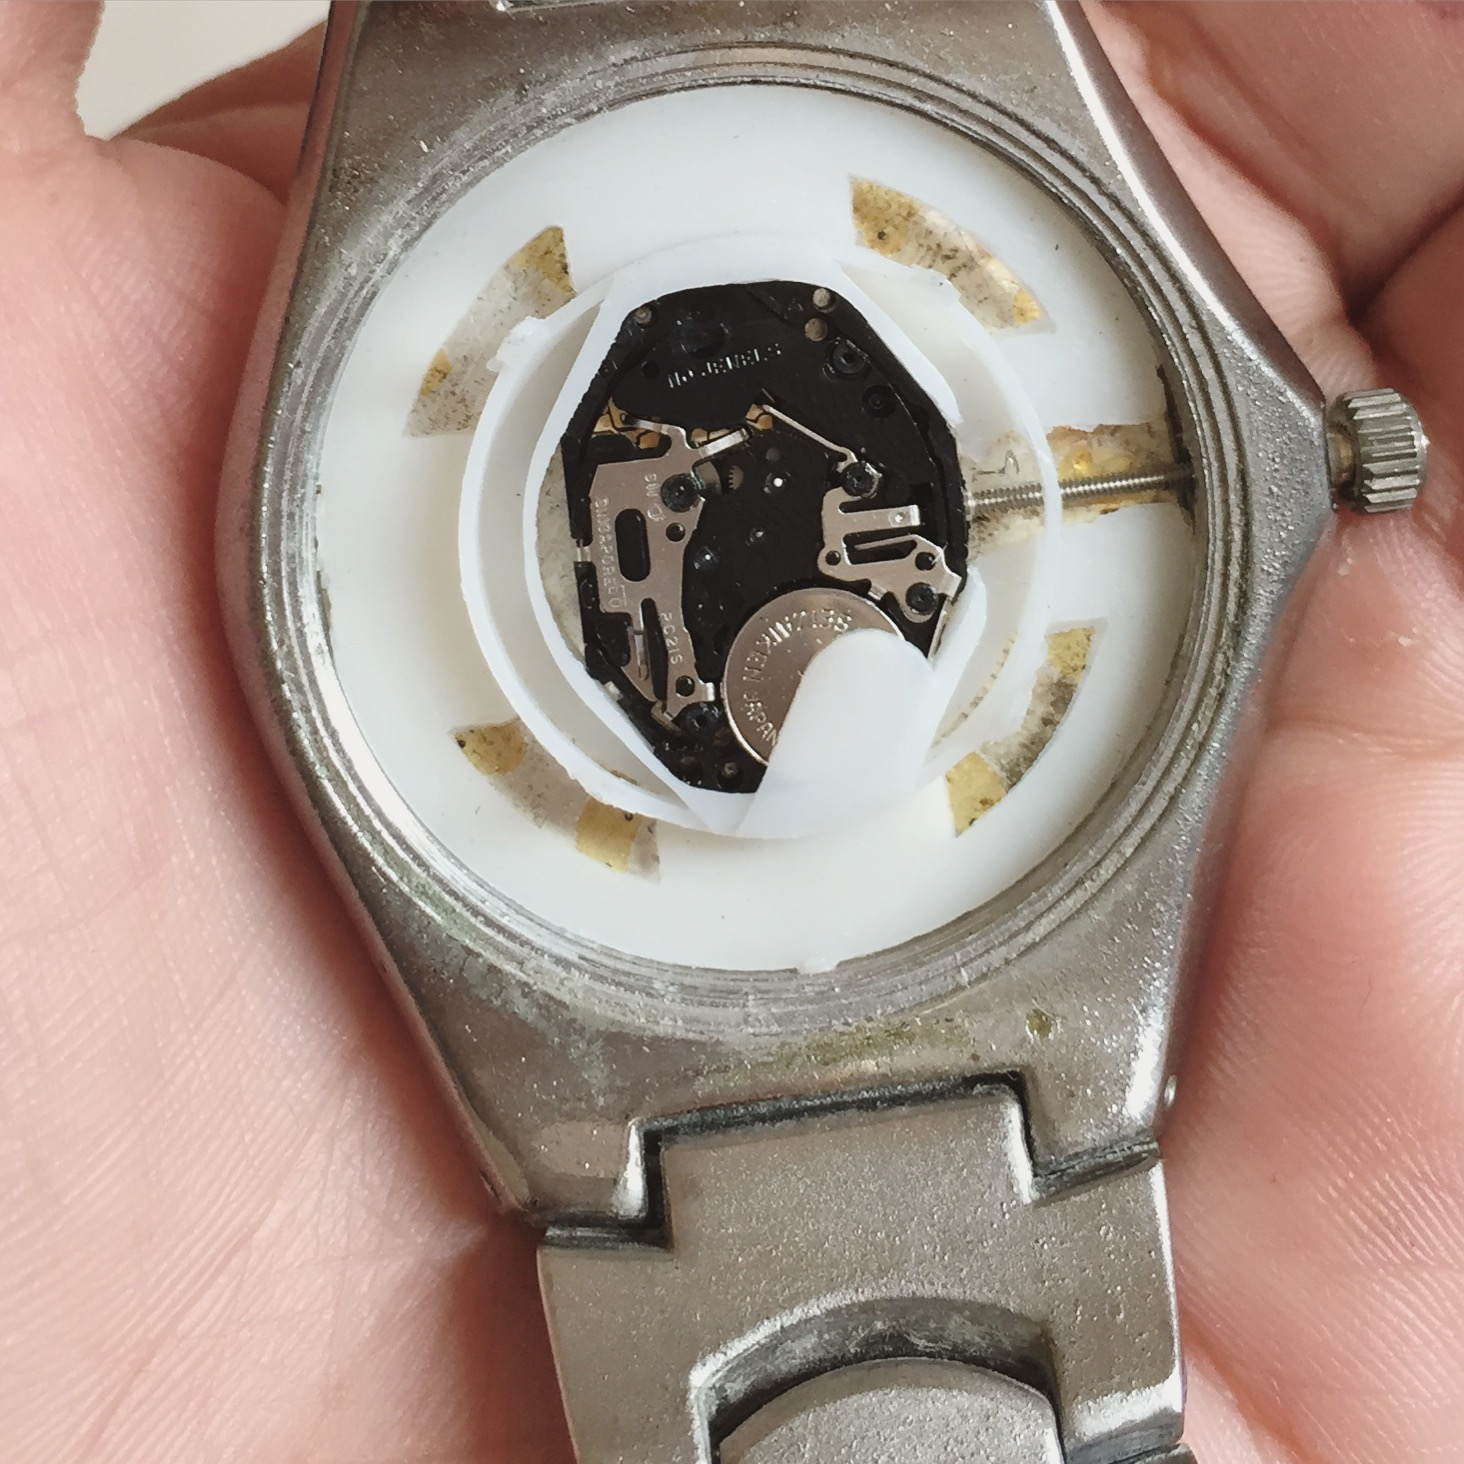 Quartz Watch without the screw back